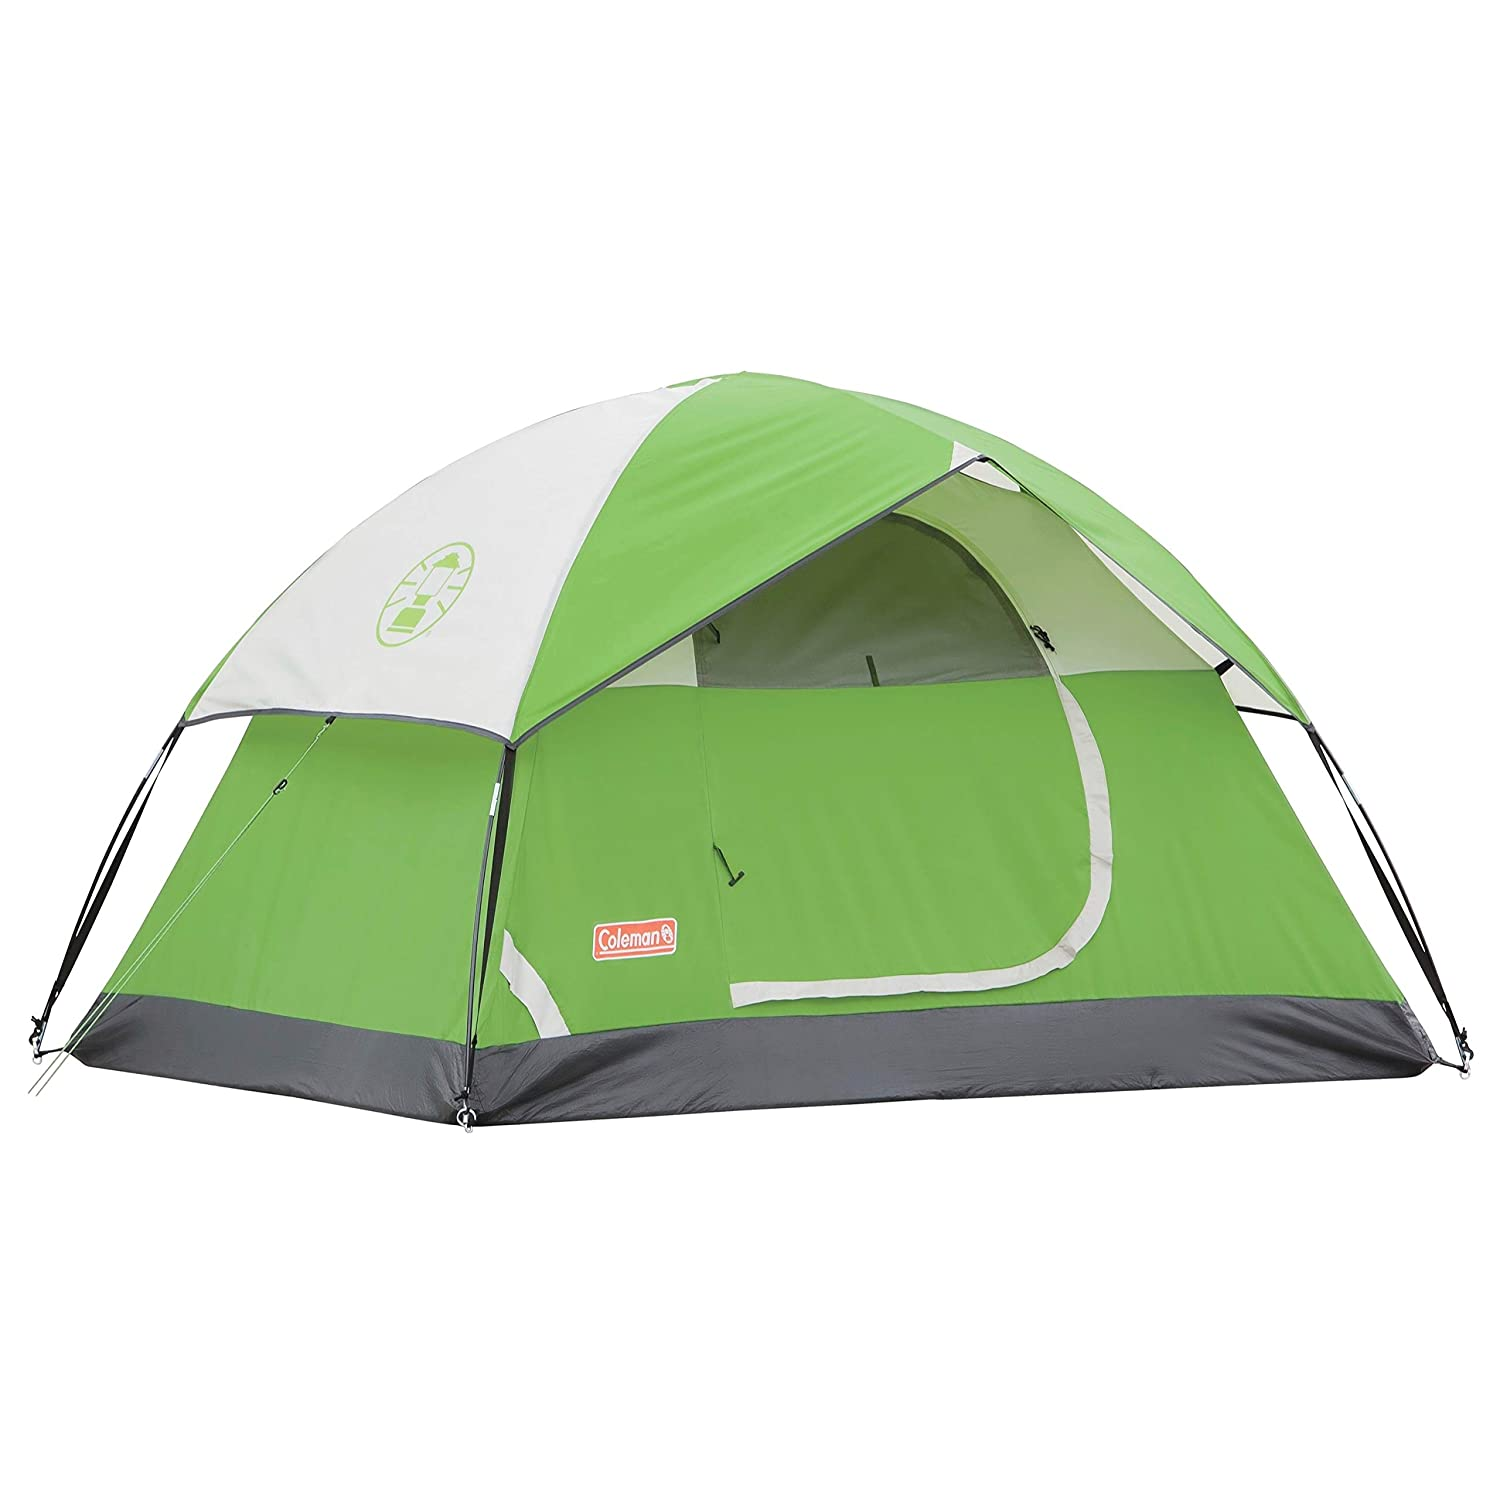 Coleman Sundome <br>Camping Green Tents